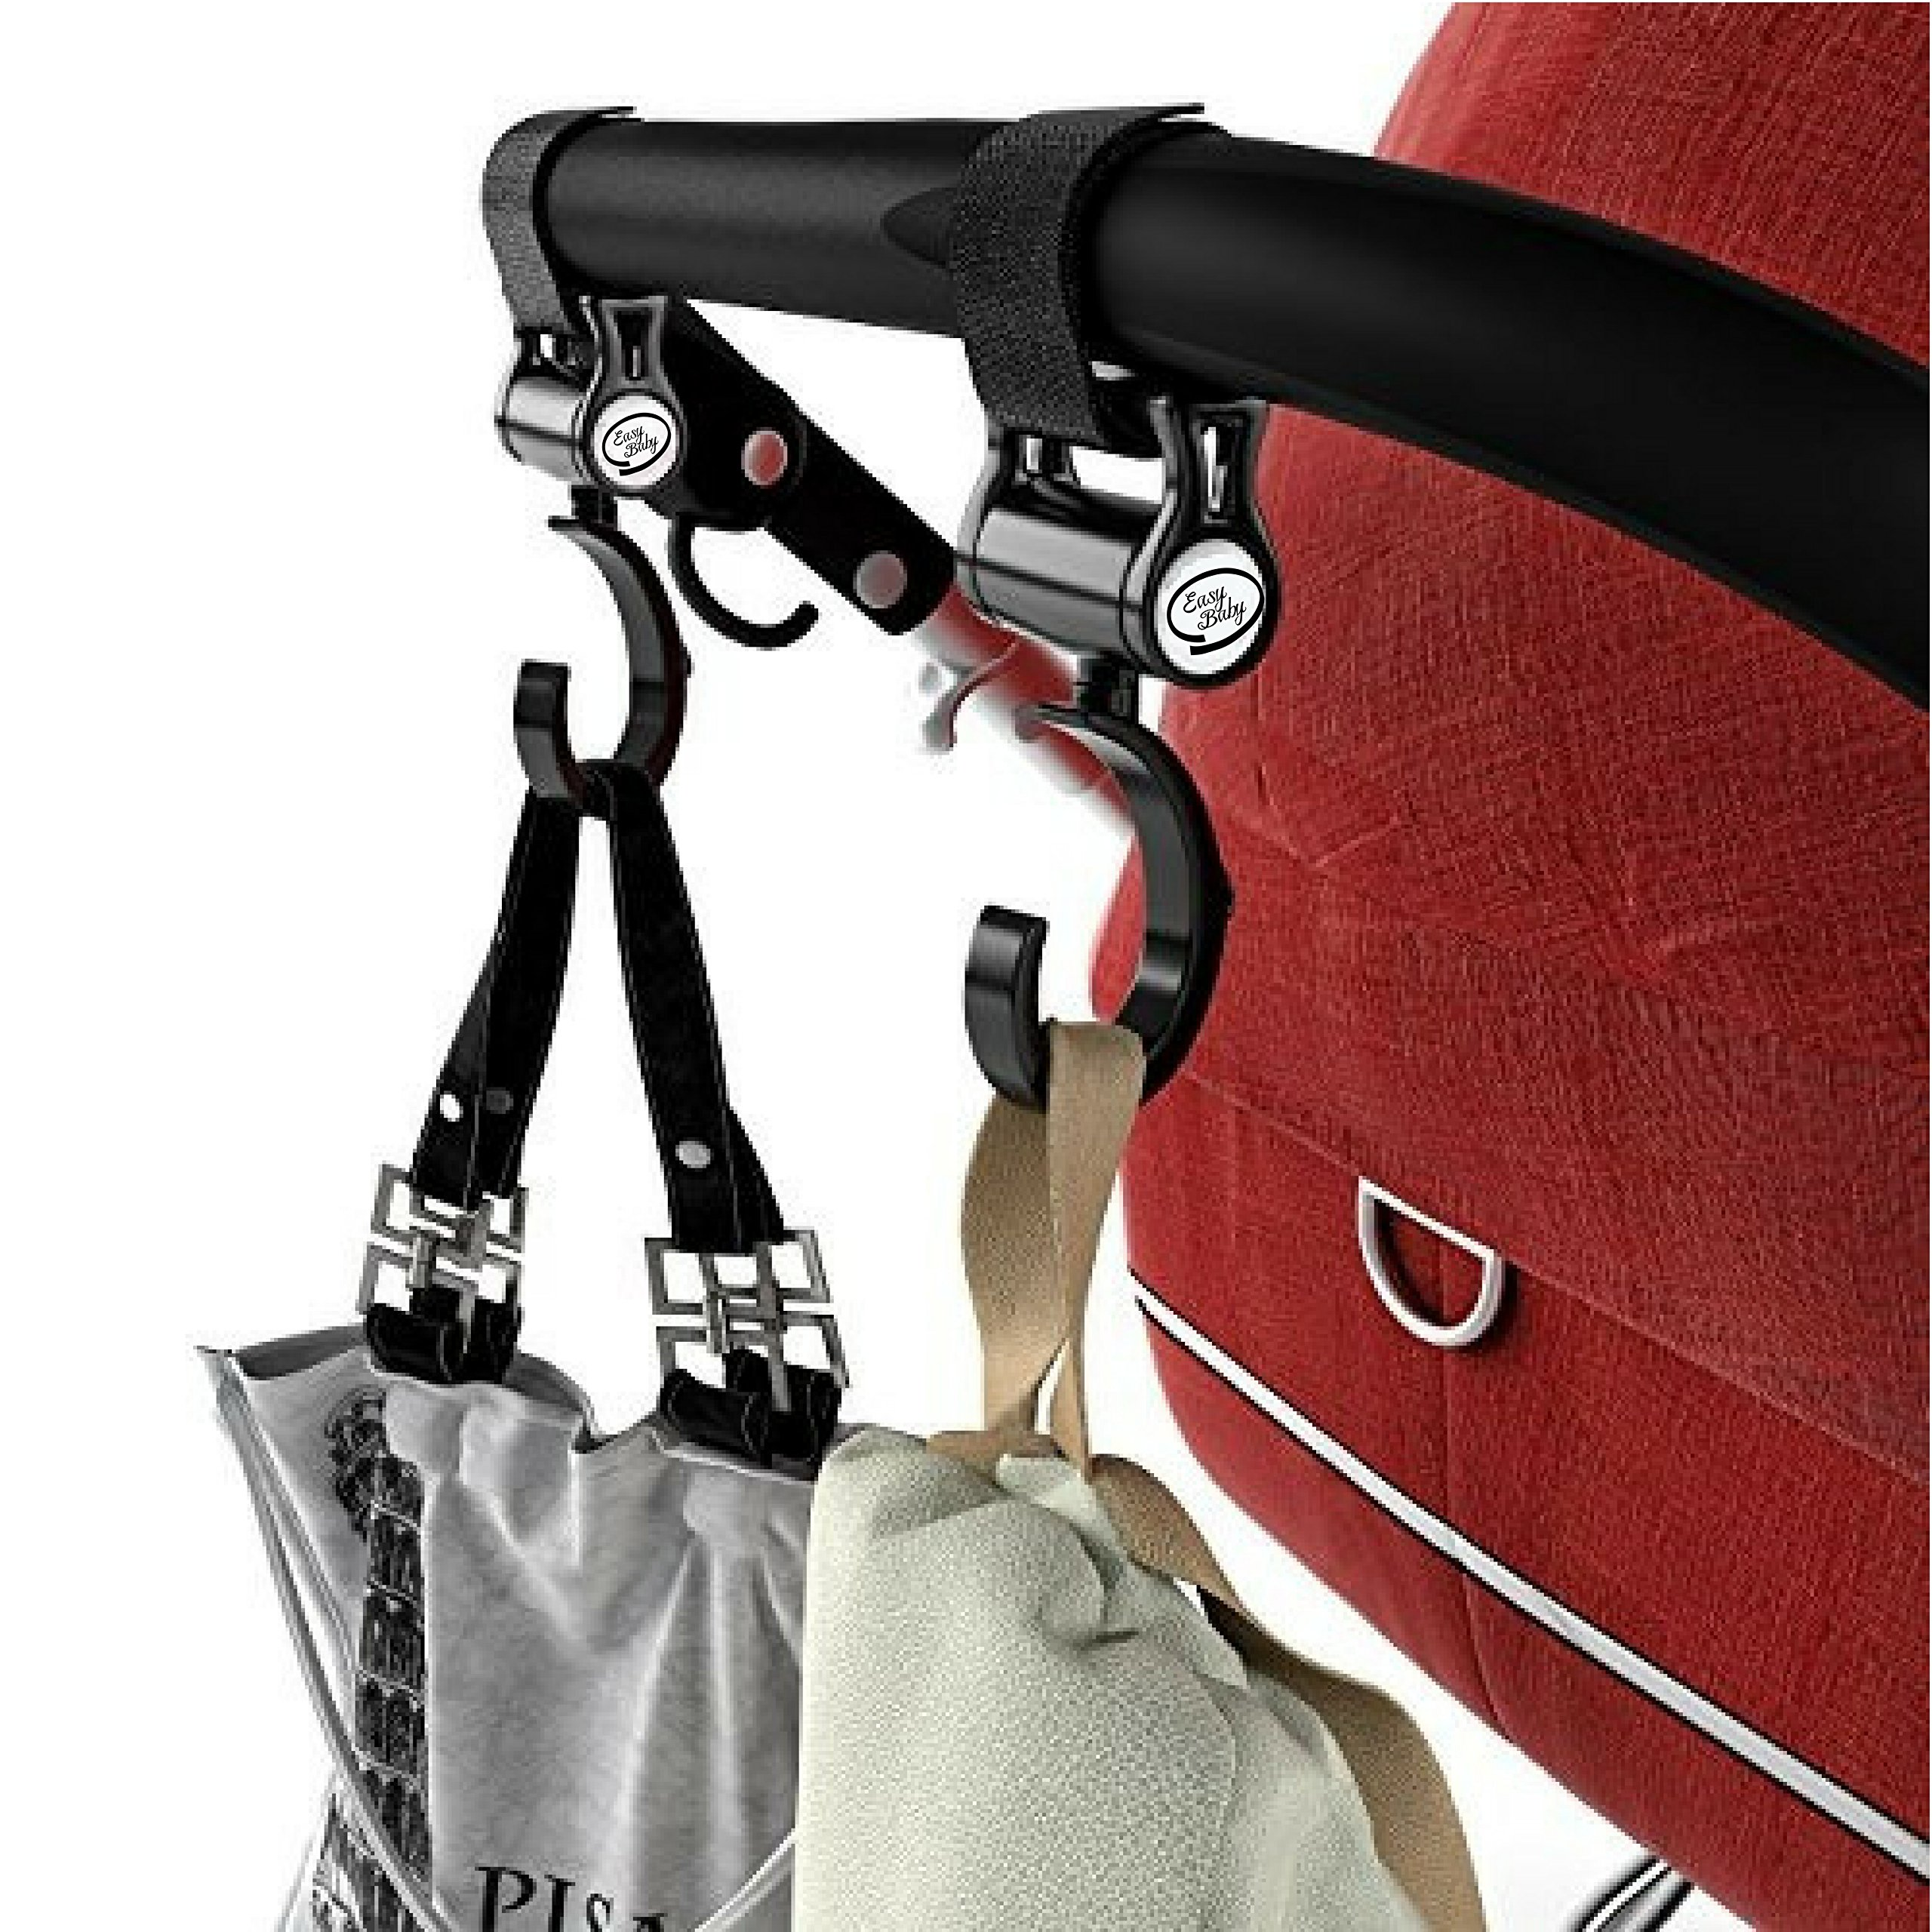 Stroller Hook - 2 Pack of Multi Purpose Hooks - Hanger for Baby Diaper Bags, Groceries, Clothing, Purse - Great Accessory for Mommy when Jogging, Walking or Shopping by Easy Baby (Image #4)